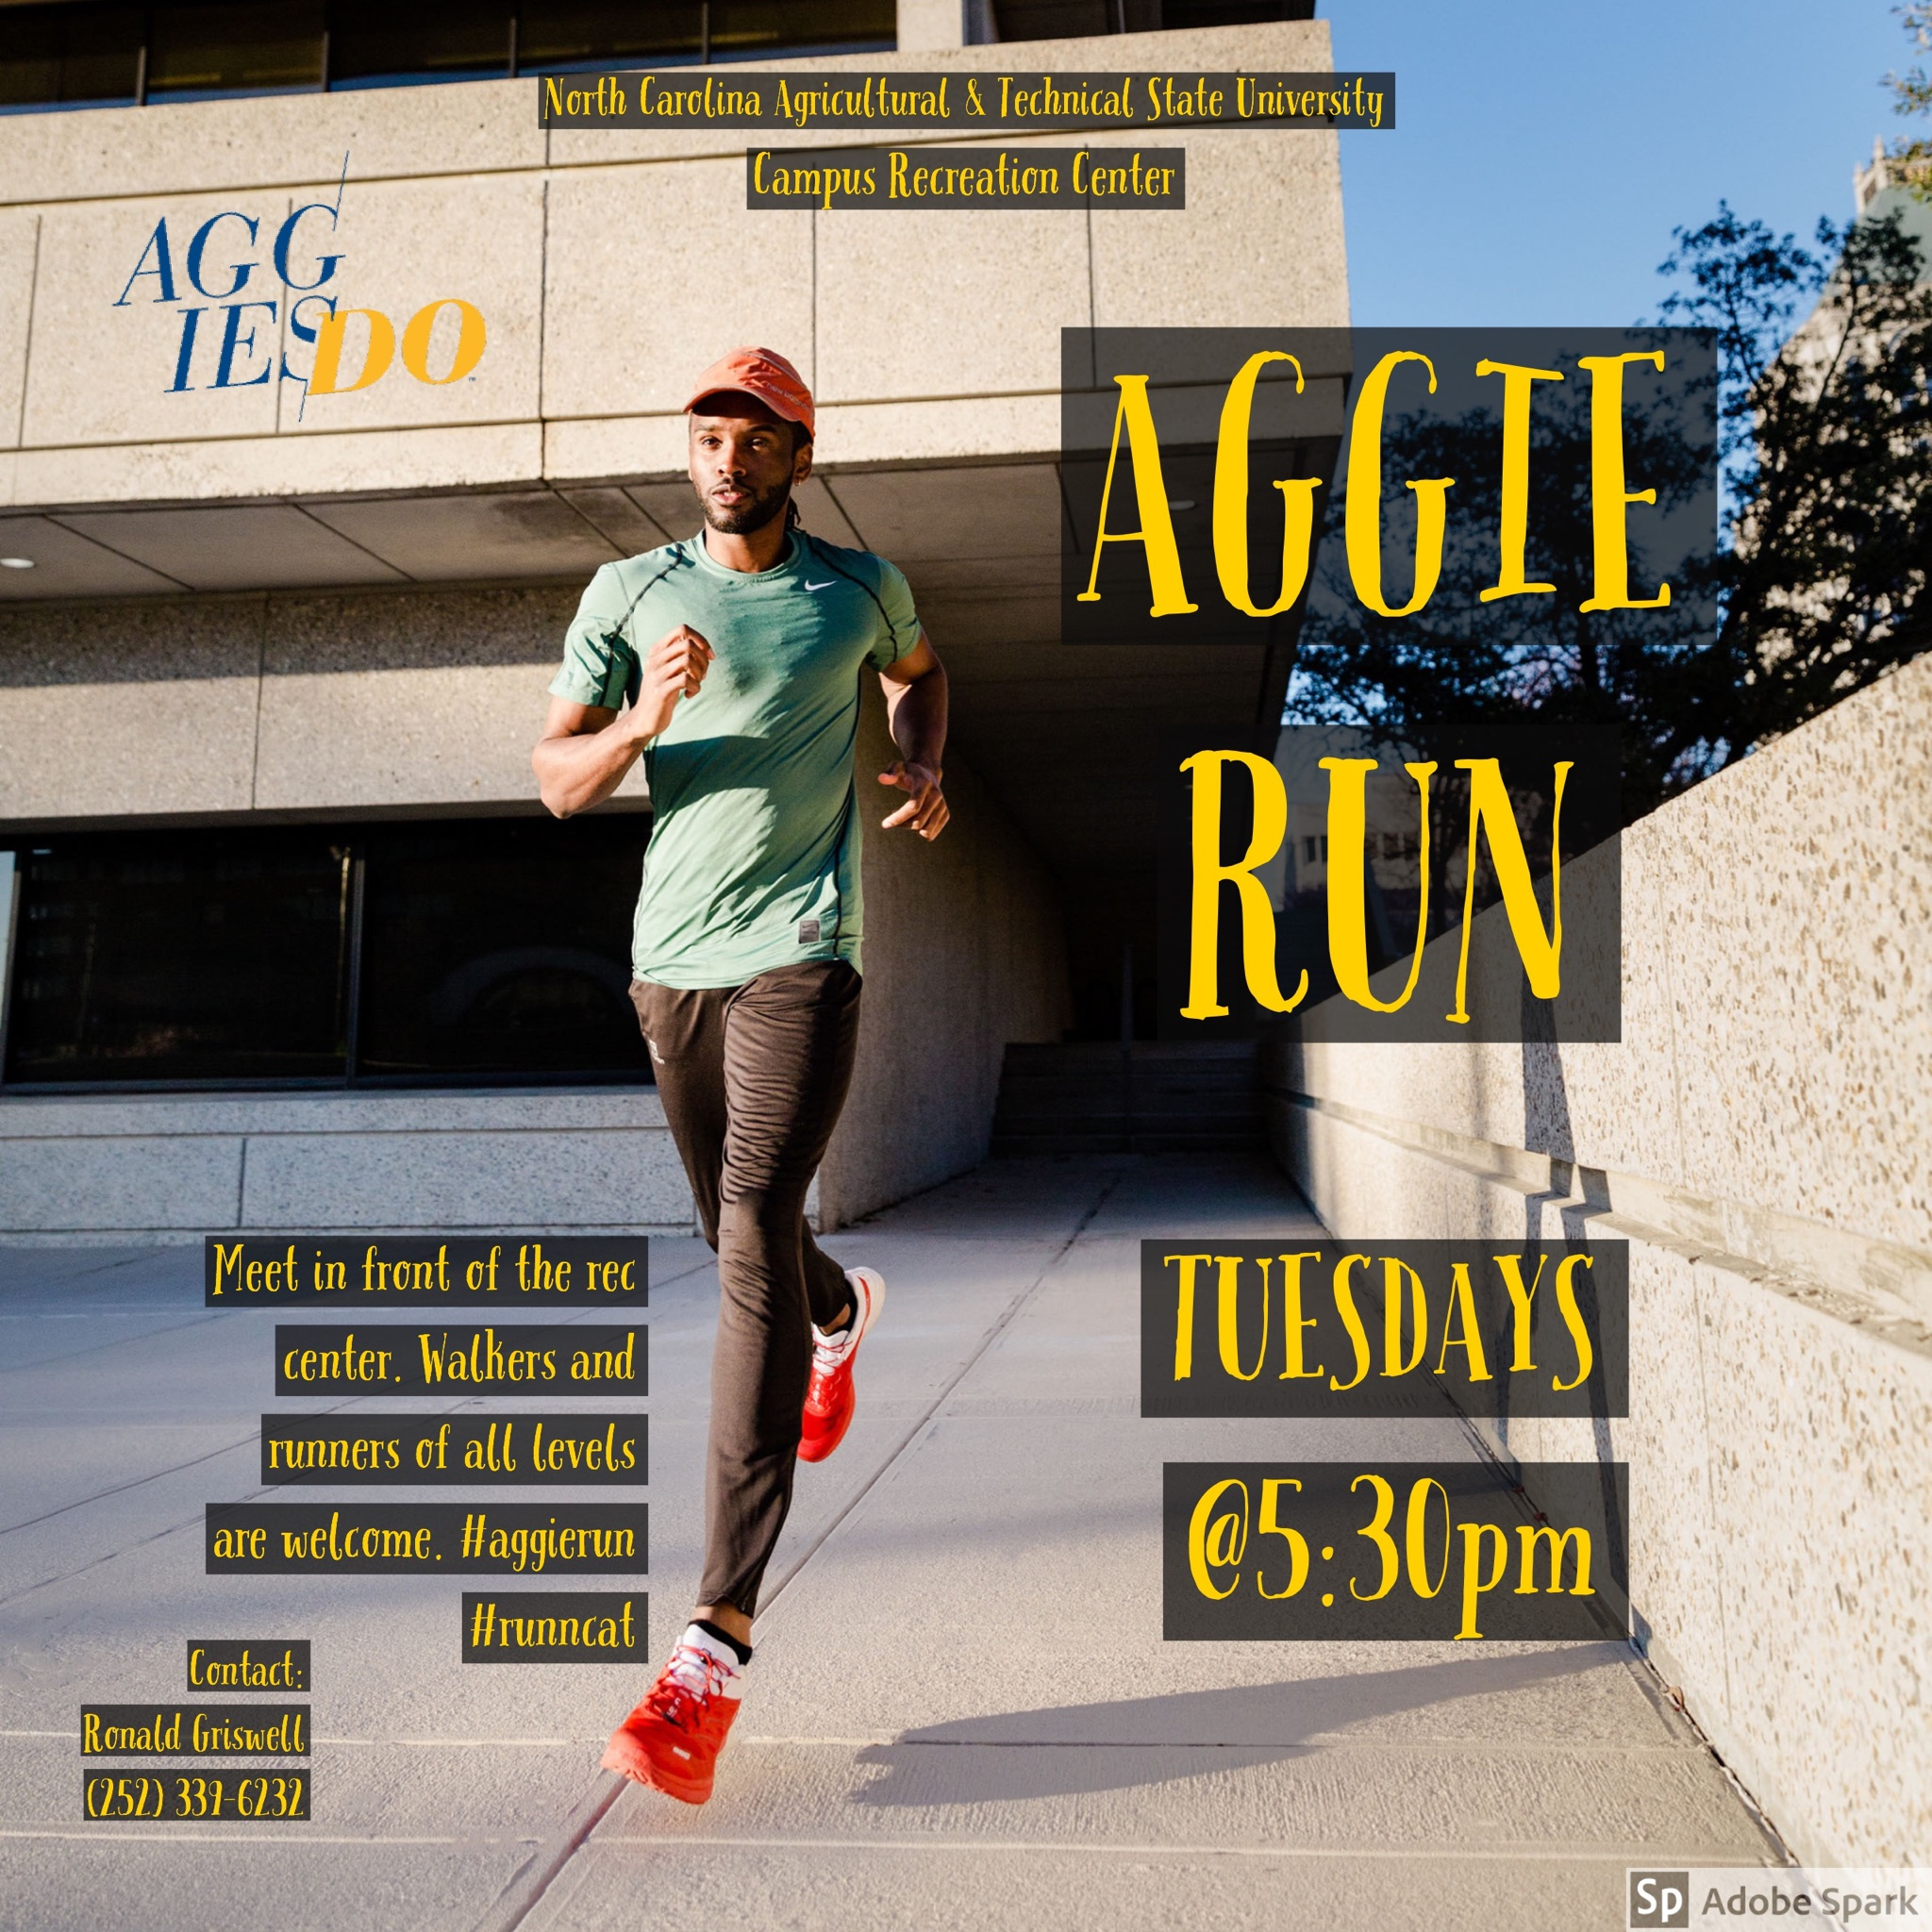 Flyer for Weekly Running Group